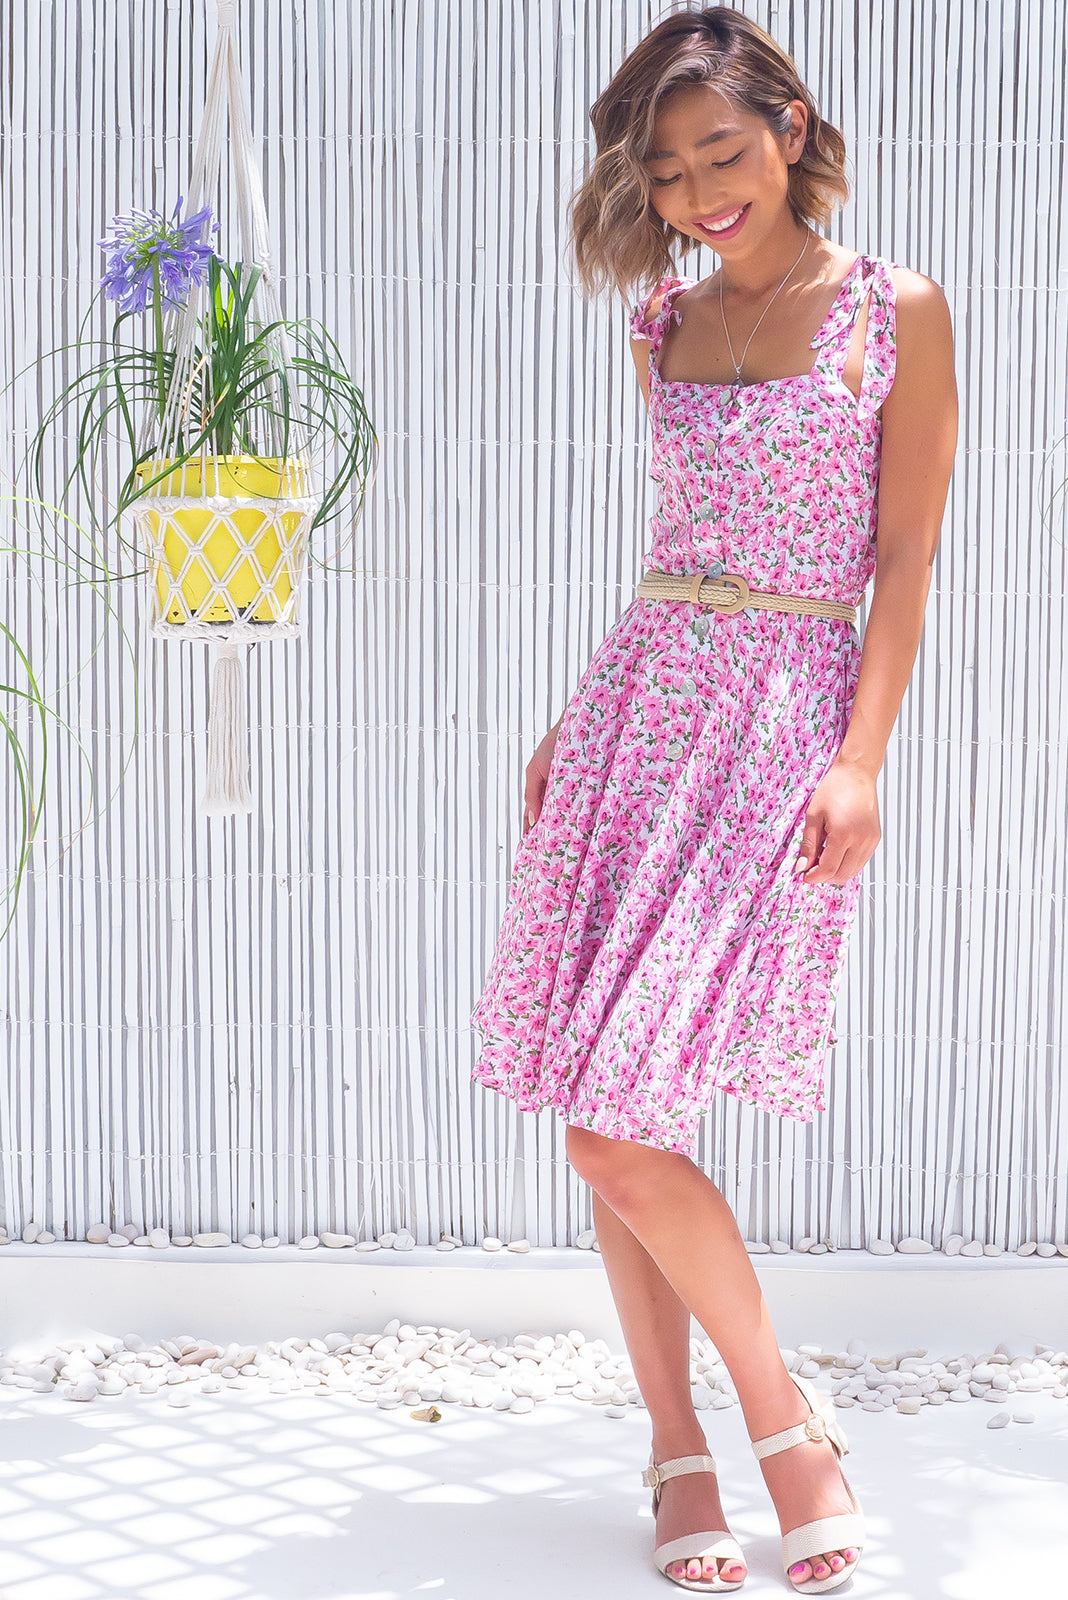 The Ruby Tuesday Fresh Pink Dress features straight neckline, tie up shoulder straps, functional button front, side pockets, elasticated waist back, full-circle hemline and 100% viscose in white base with pink flower print and this comes with a woven belt.